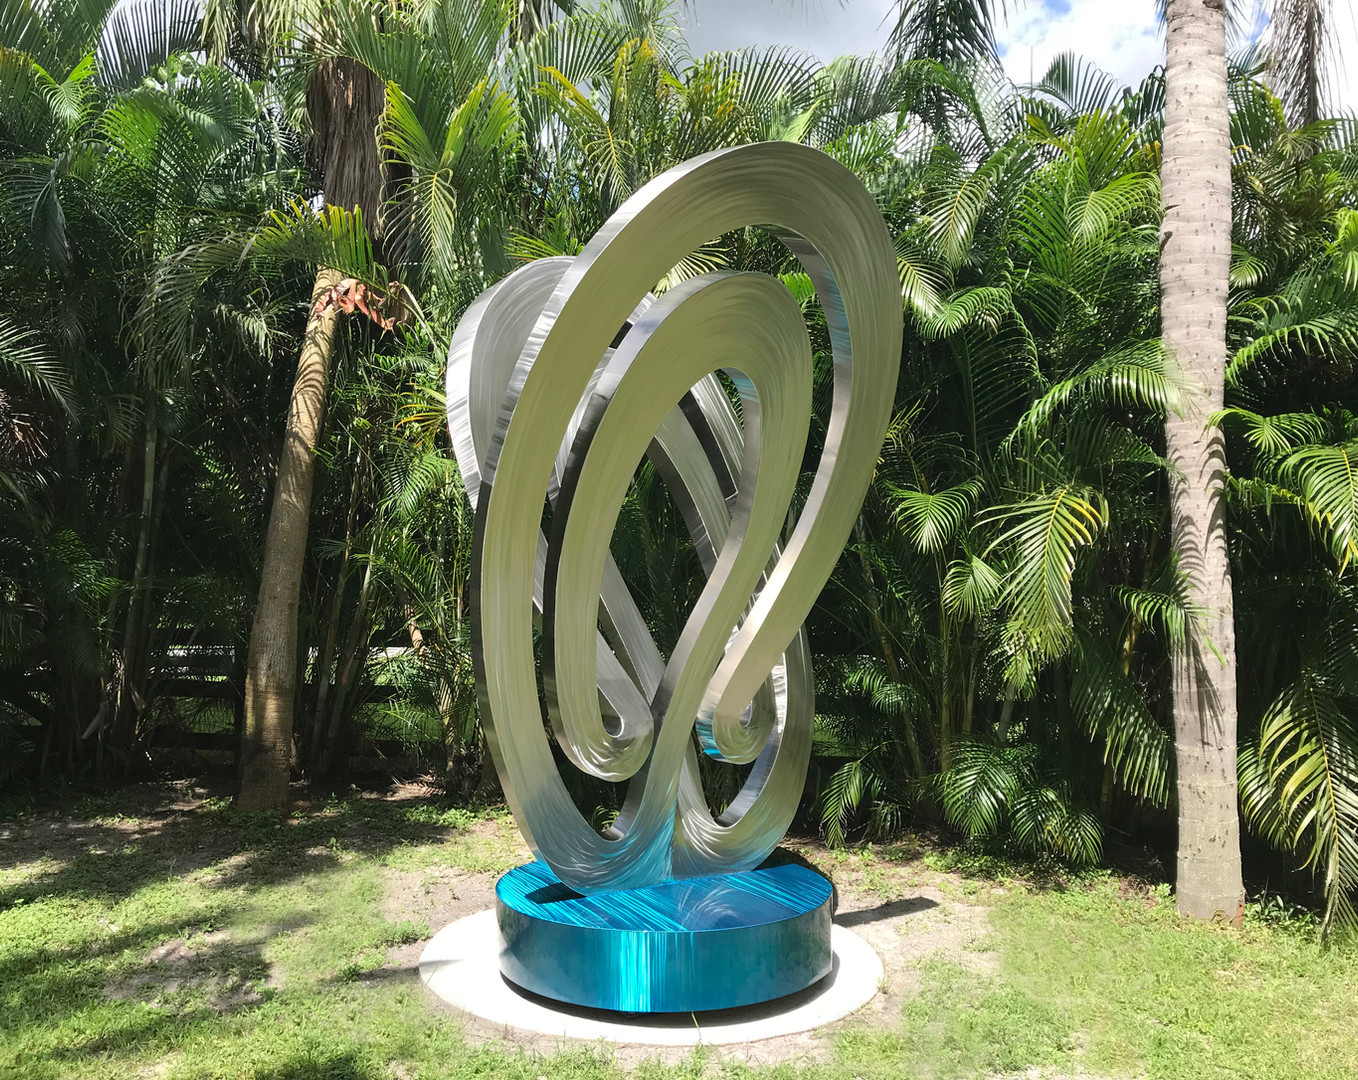 Stainless Steel Mobius Sculpture